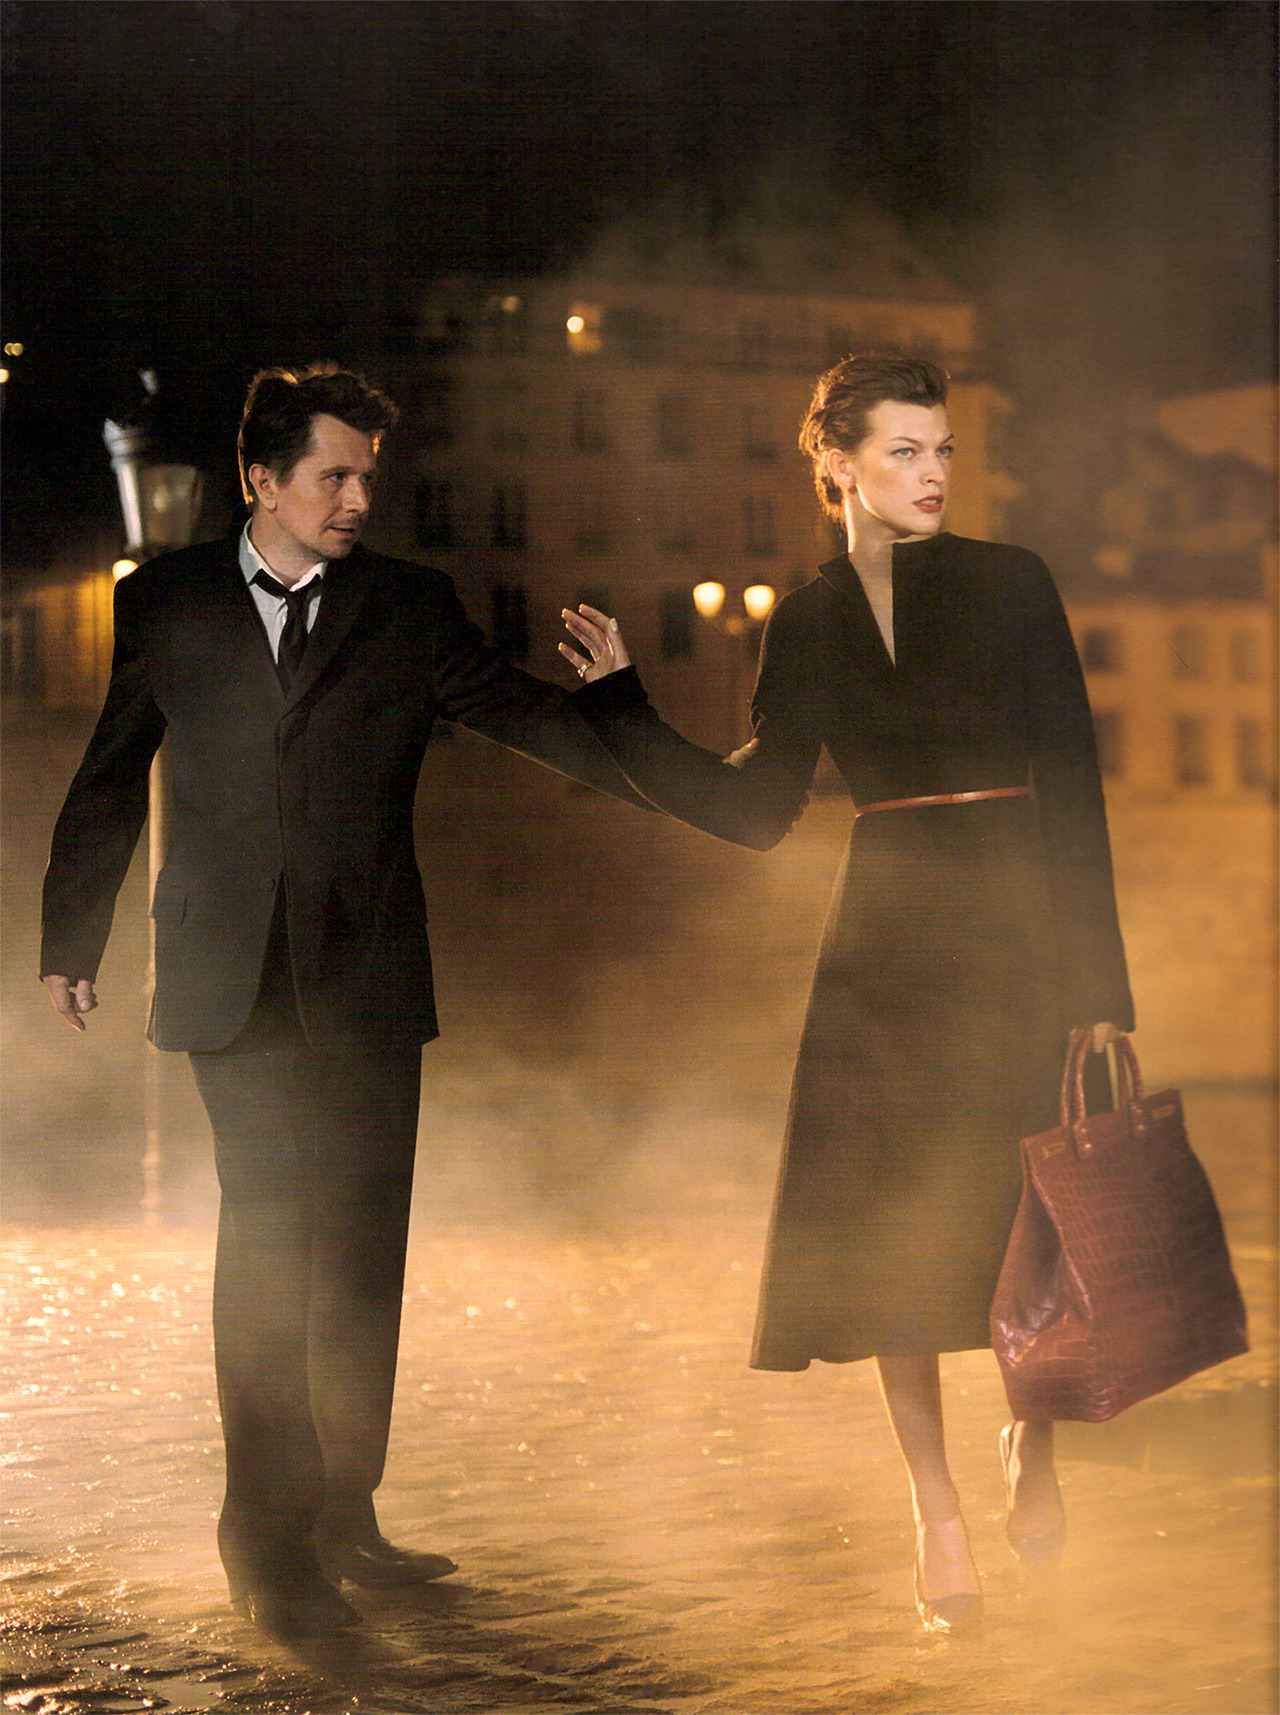 Milla Jovovich and Gary Oldman photographed by Mikael Jansson for Donna Karan New York, Autumn 2000